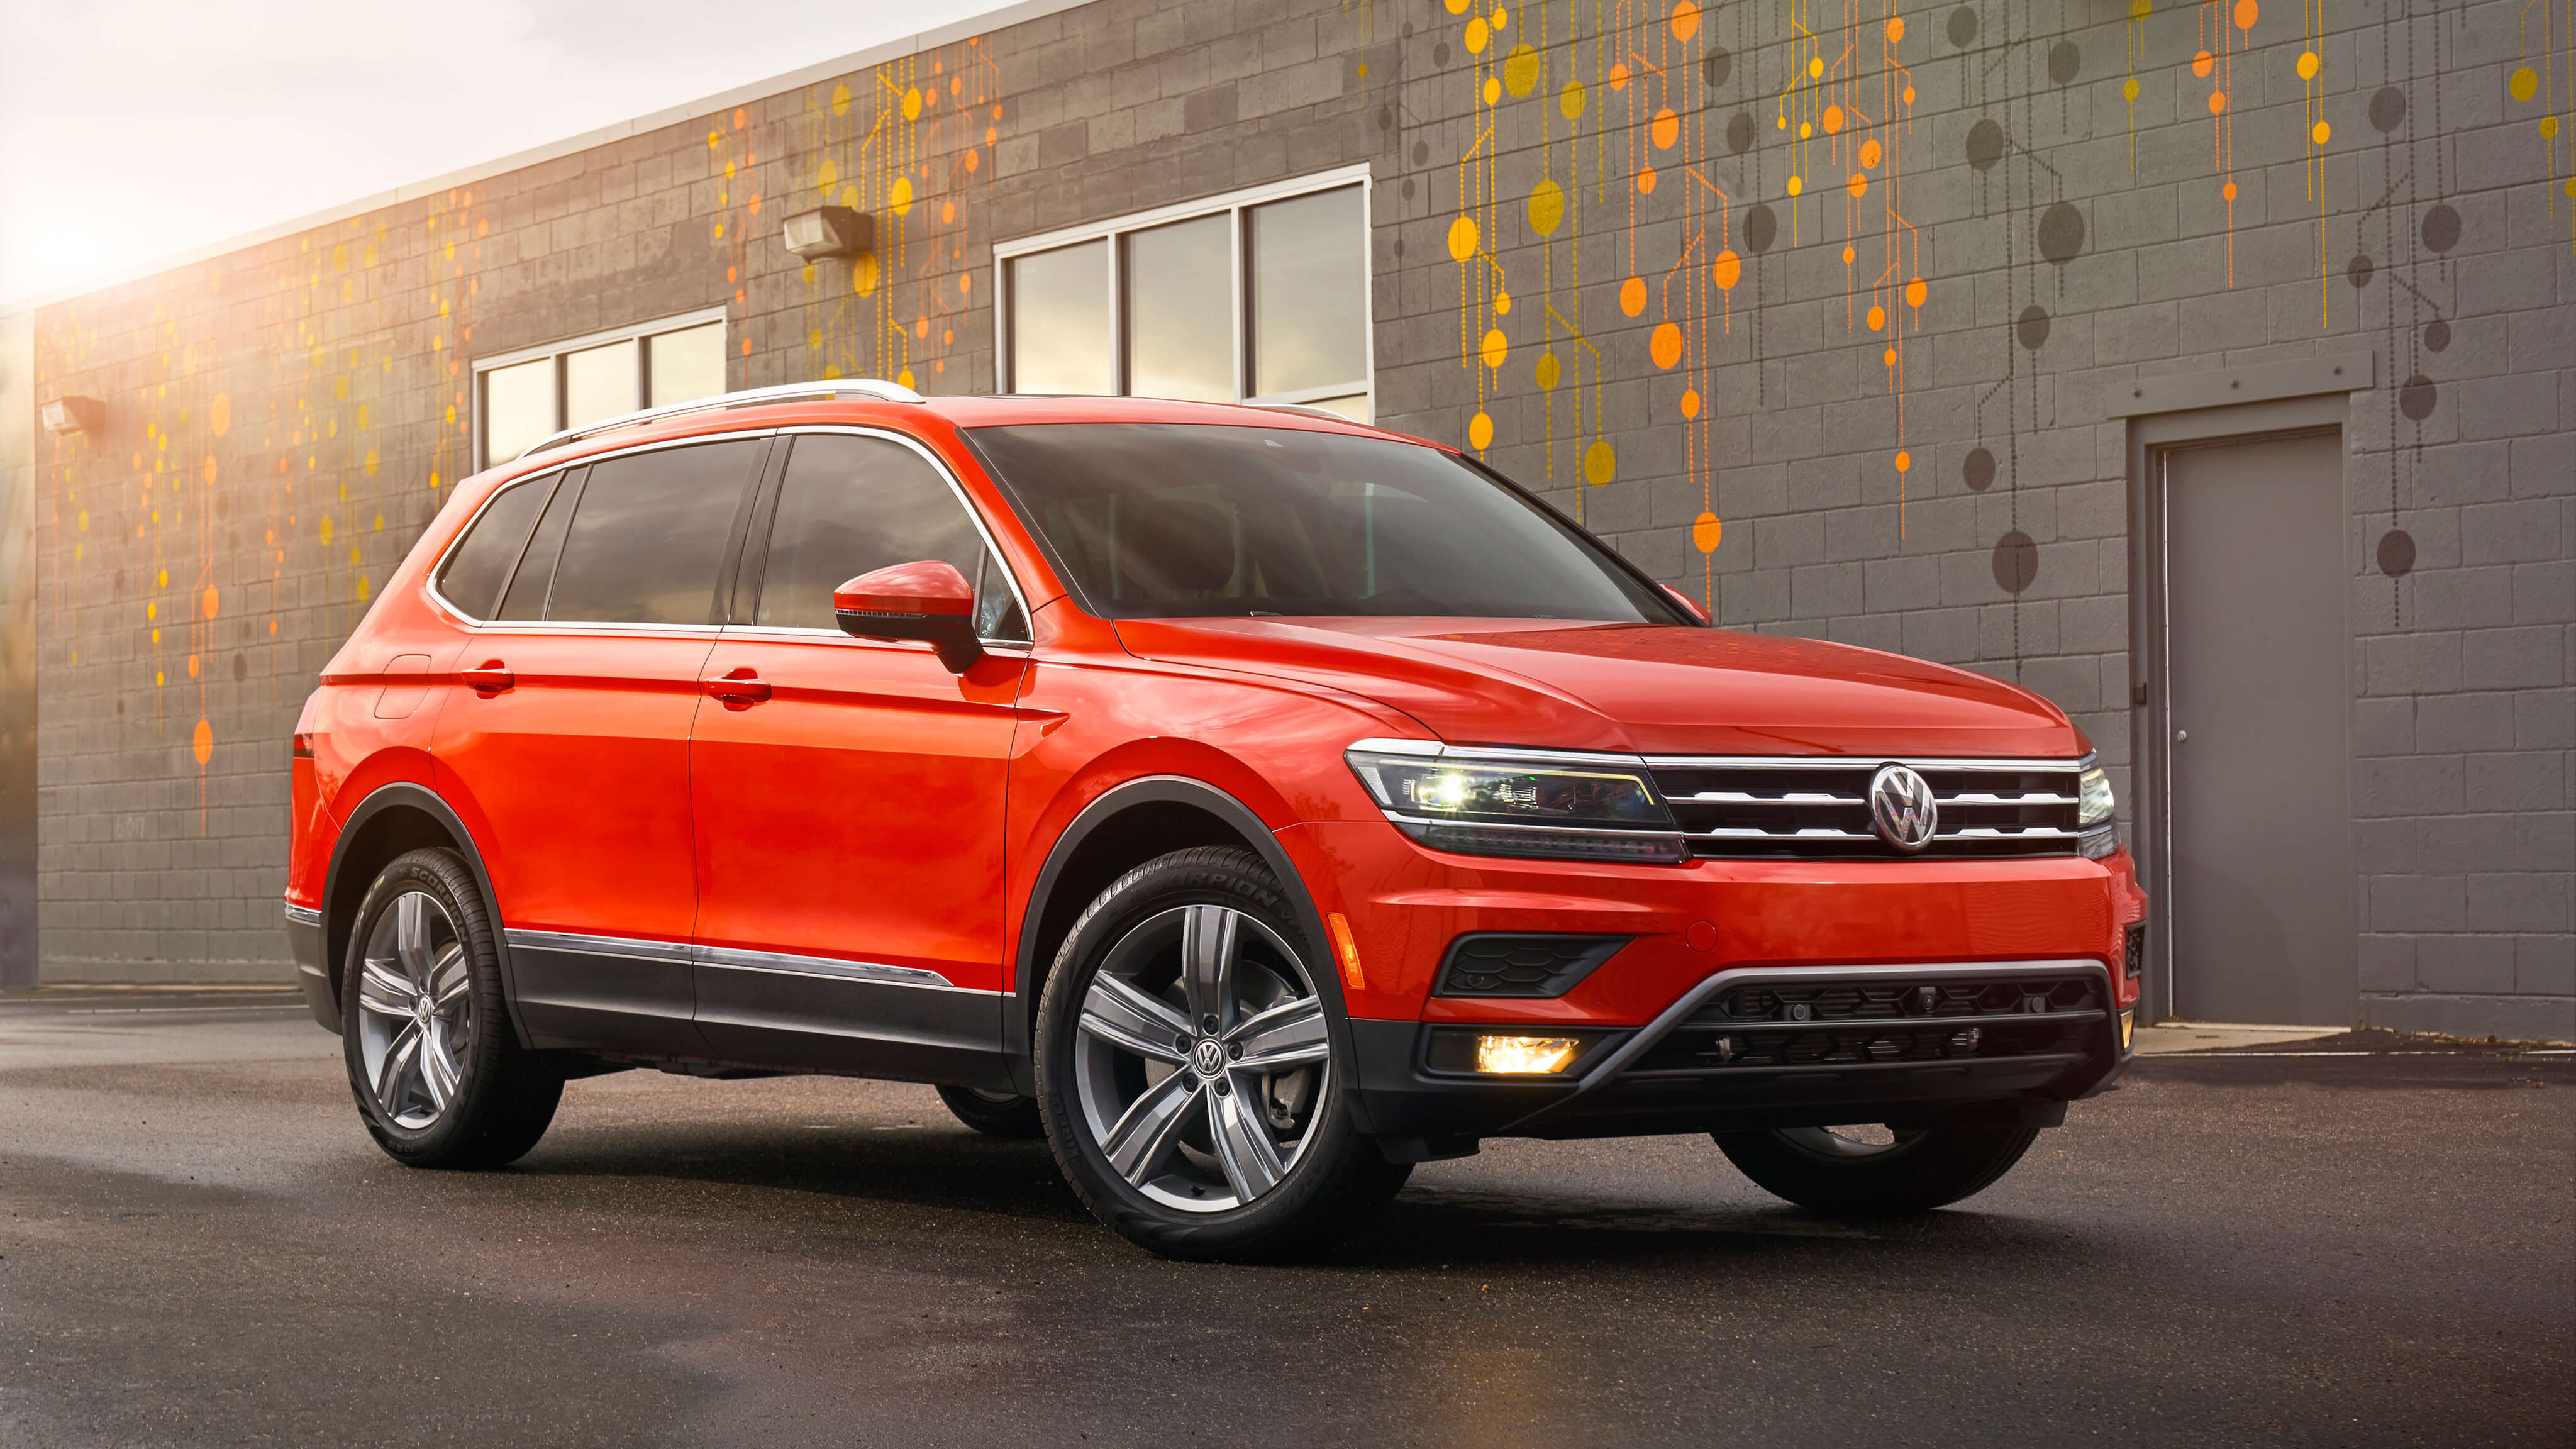 4k volkswagen tiguan hd wallpaper 65854